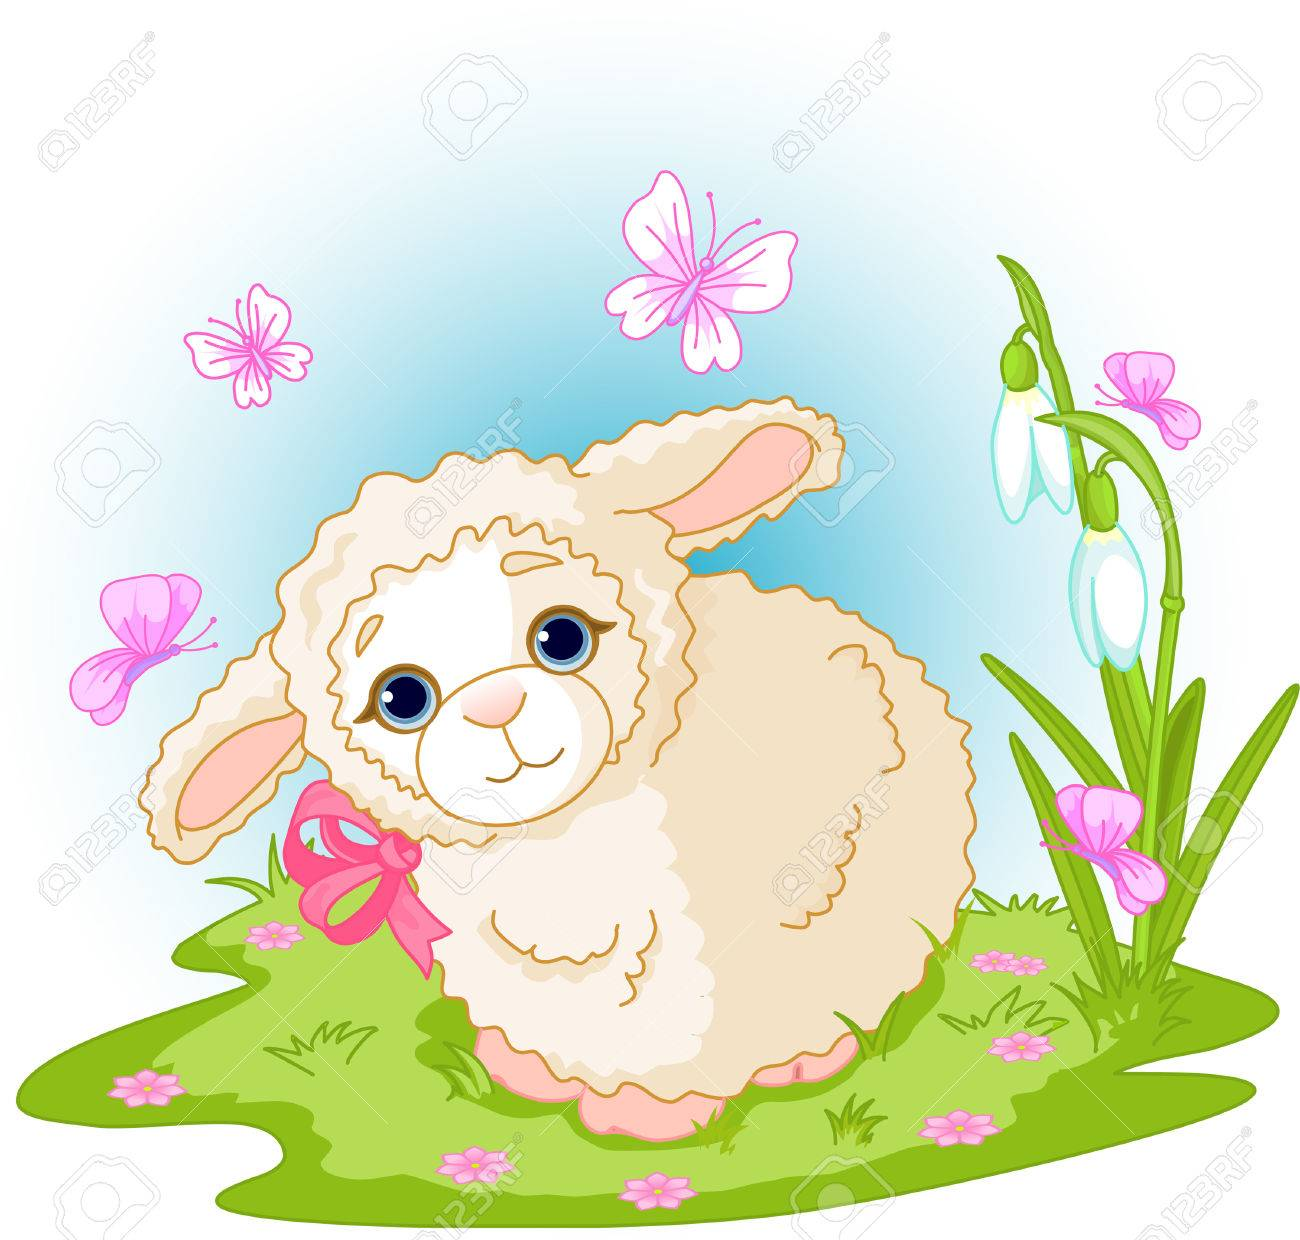 Image result for spring lambs clipart